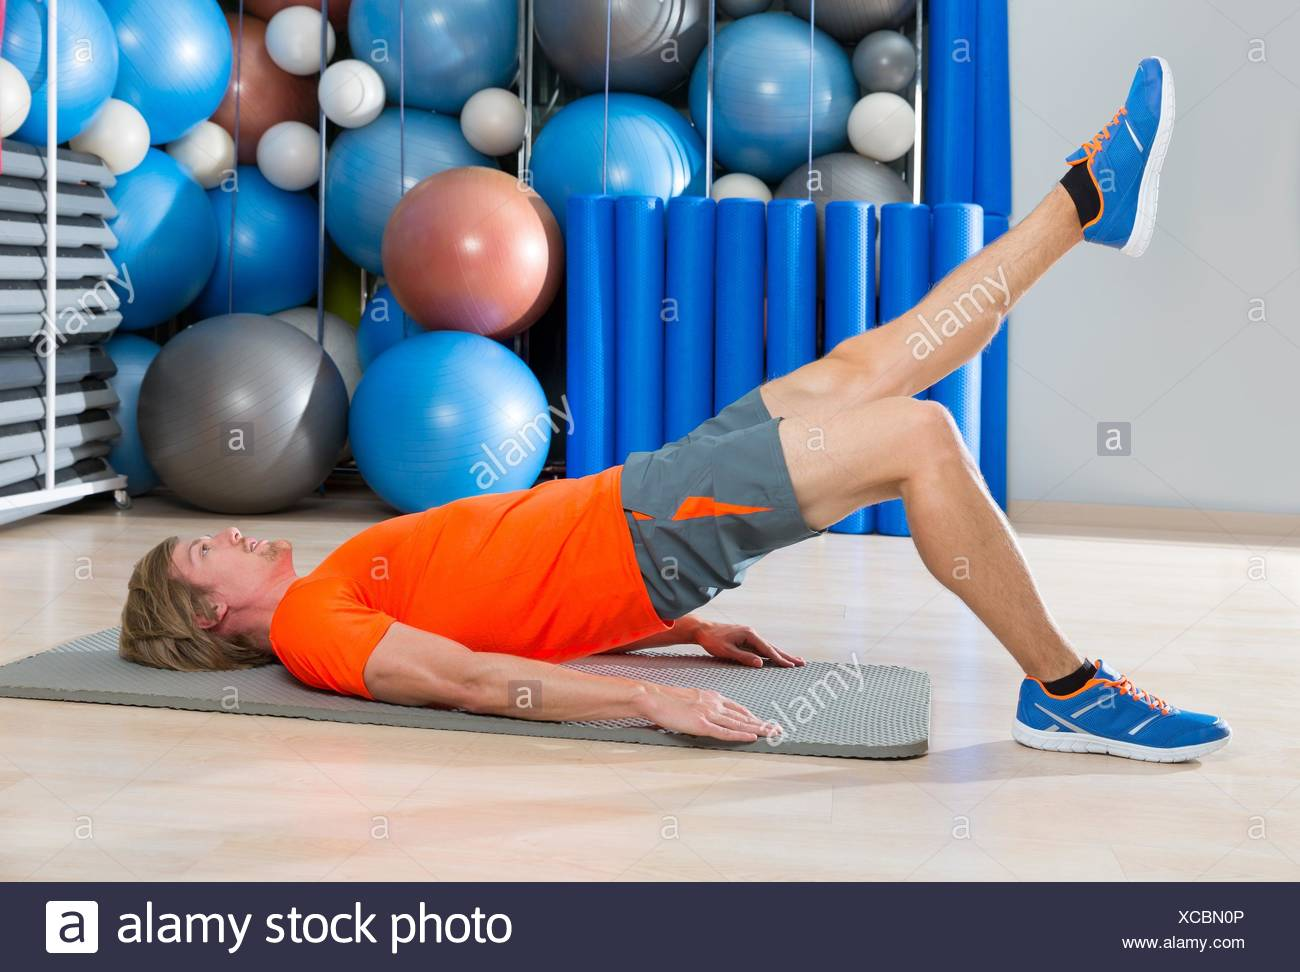 hip lift with leg extension blond man at gym workout with swiss ball background. - Stock Image